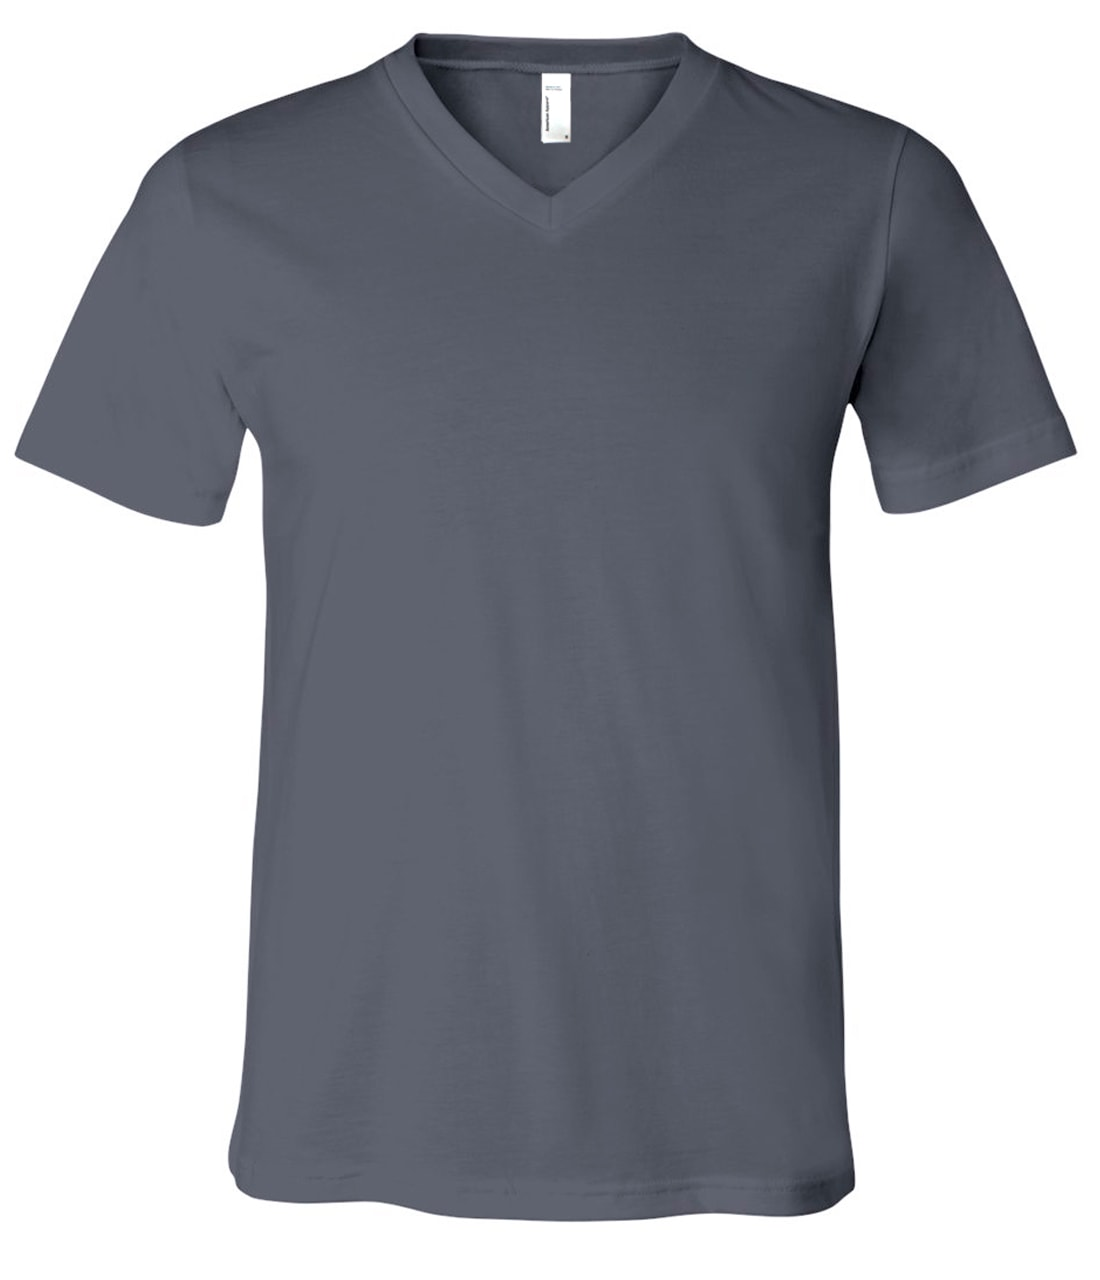 Picture of American Apparel Fine Jersey Short Sleeve V-Neck